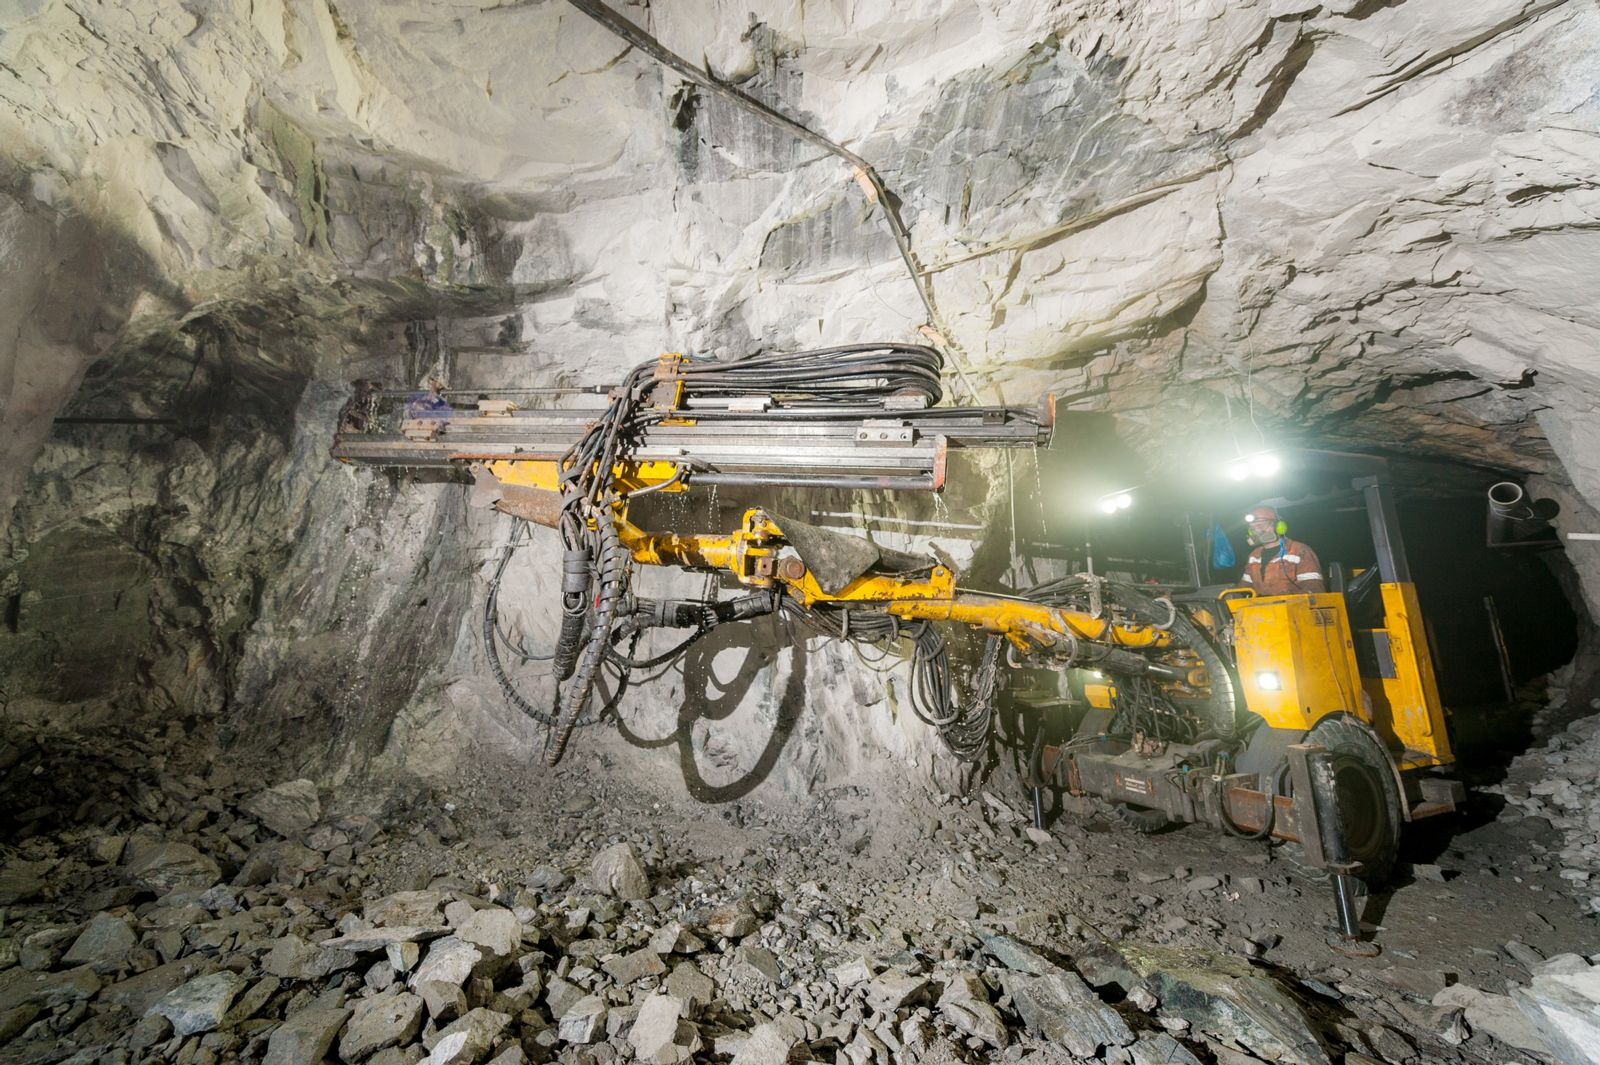 Equipment for mining